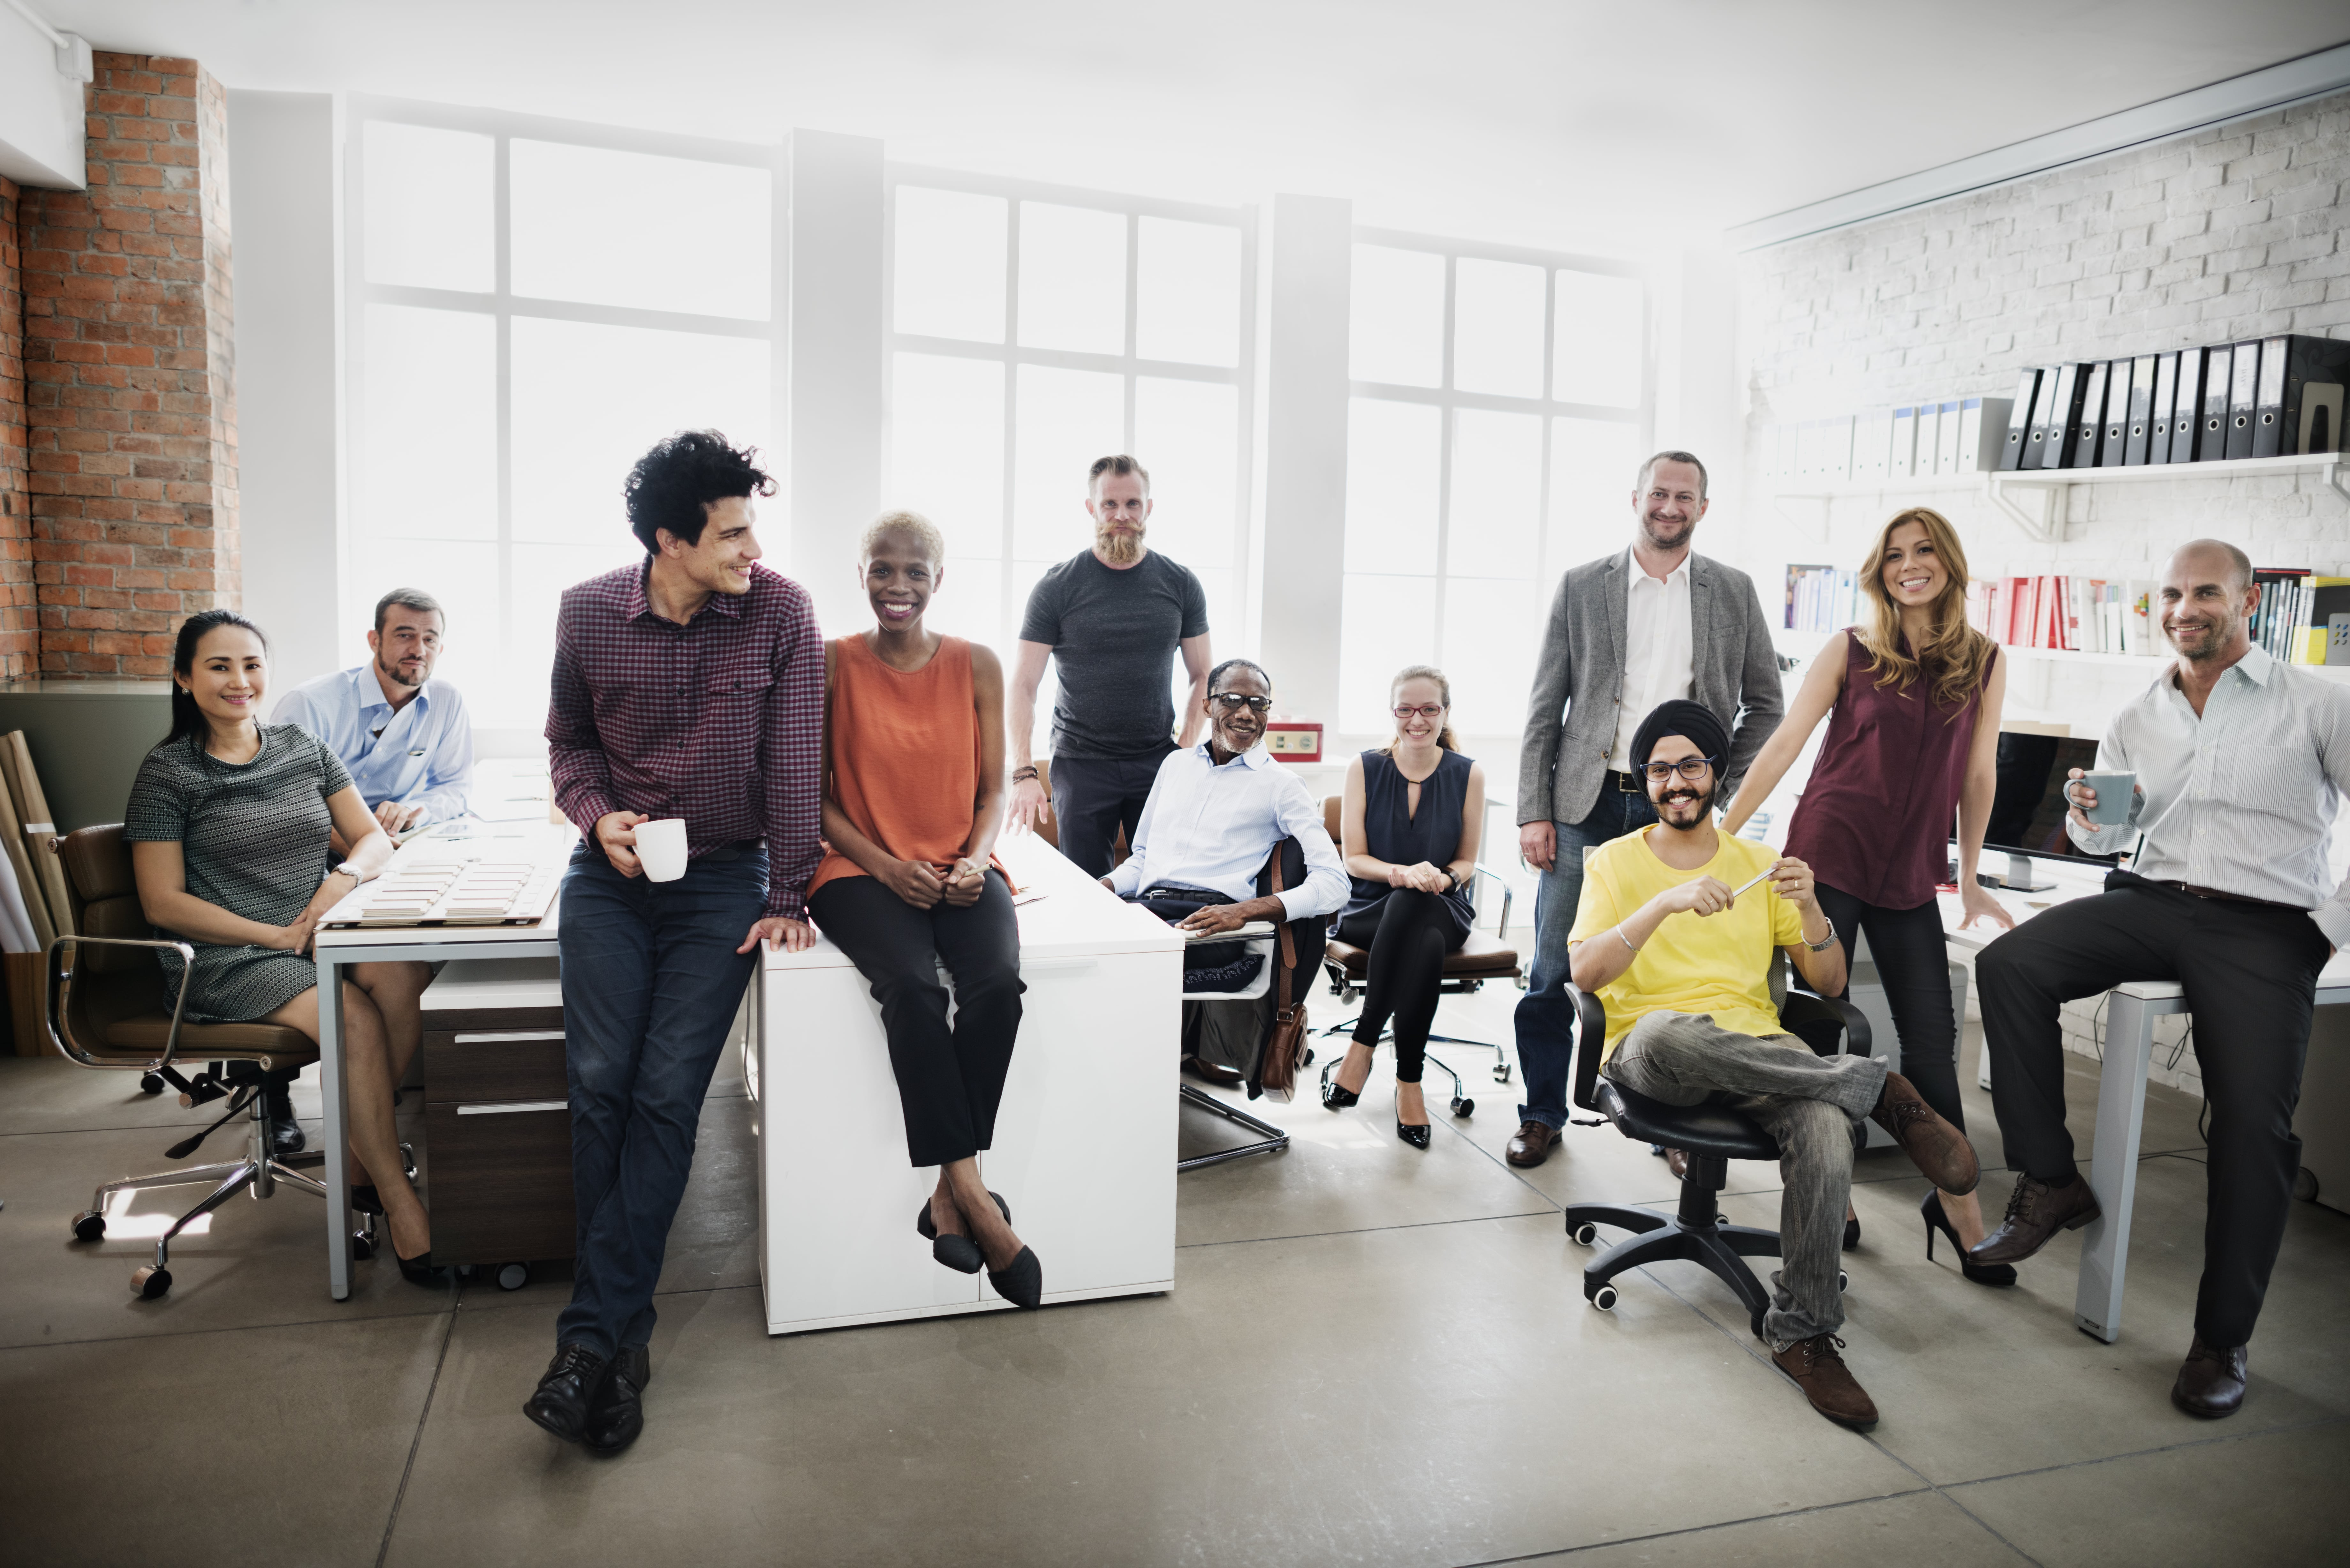 A diverse workforce ensures inclusivity and improves productivity